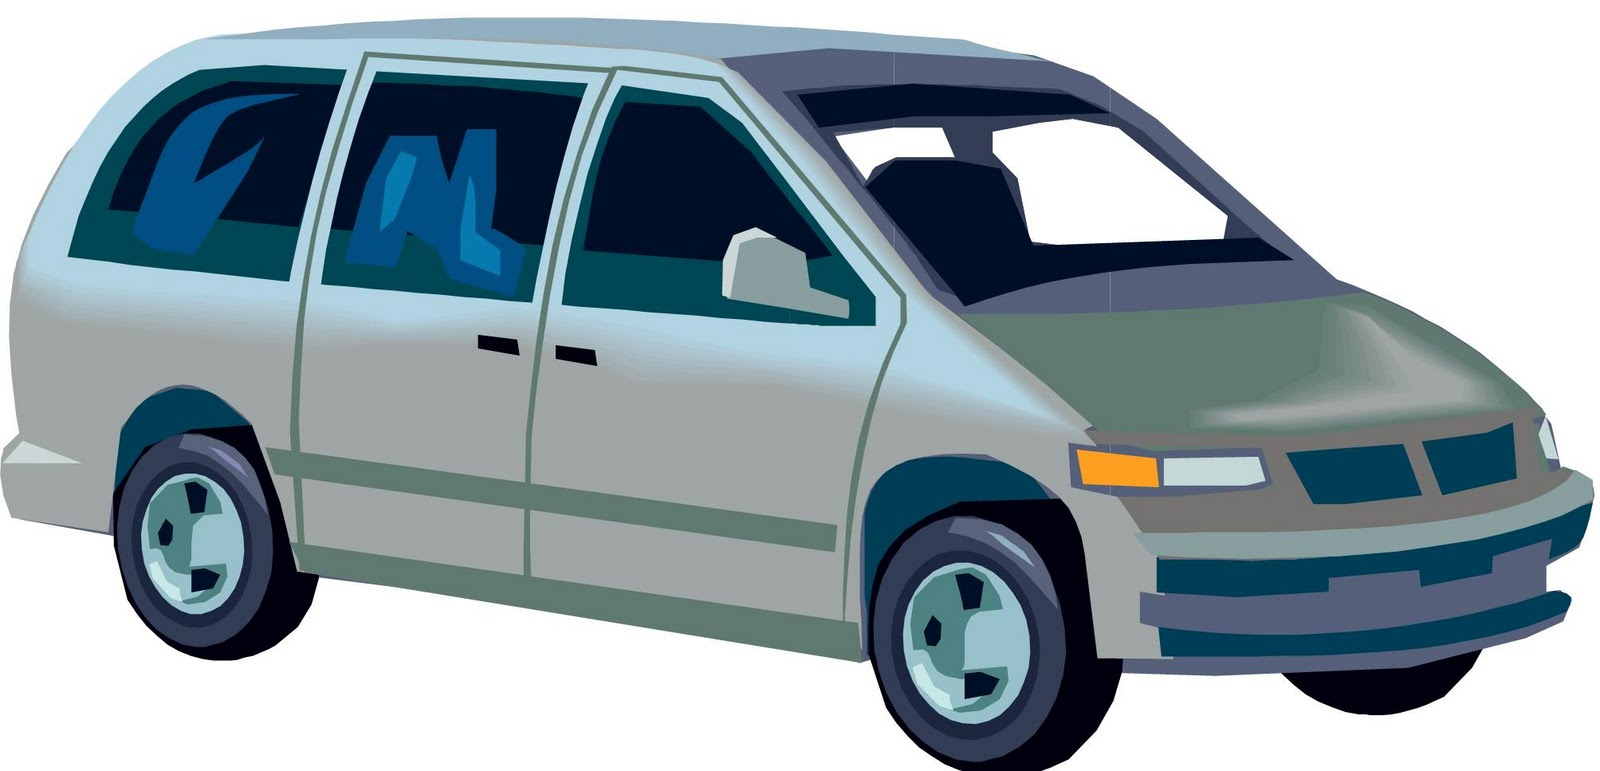 Minivan clipart. Drawing at getdrawings com